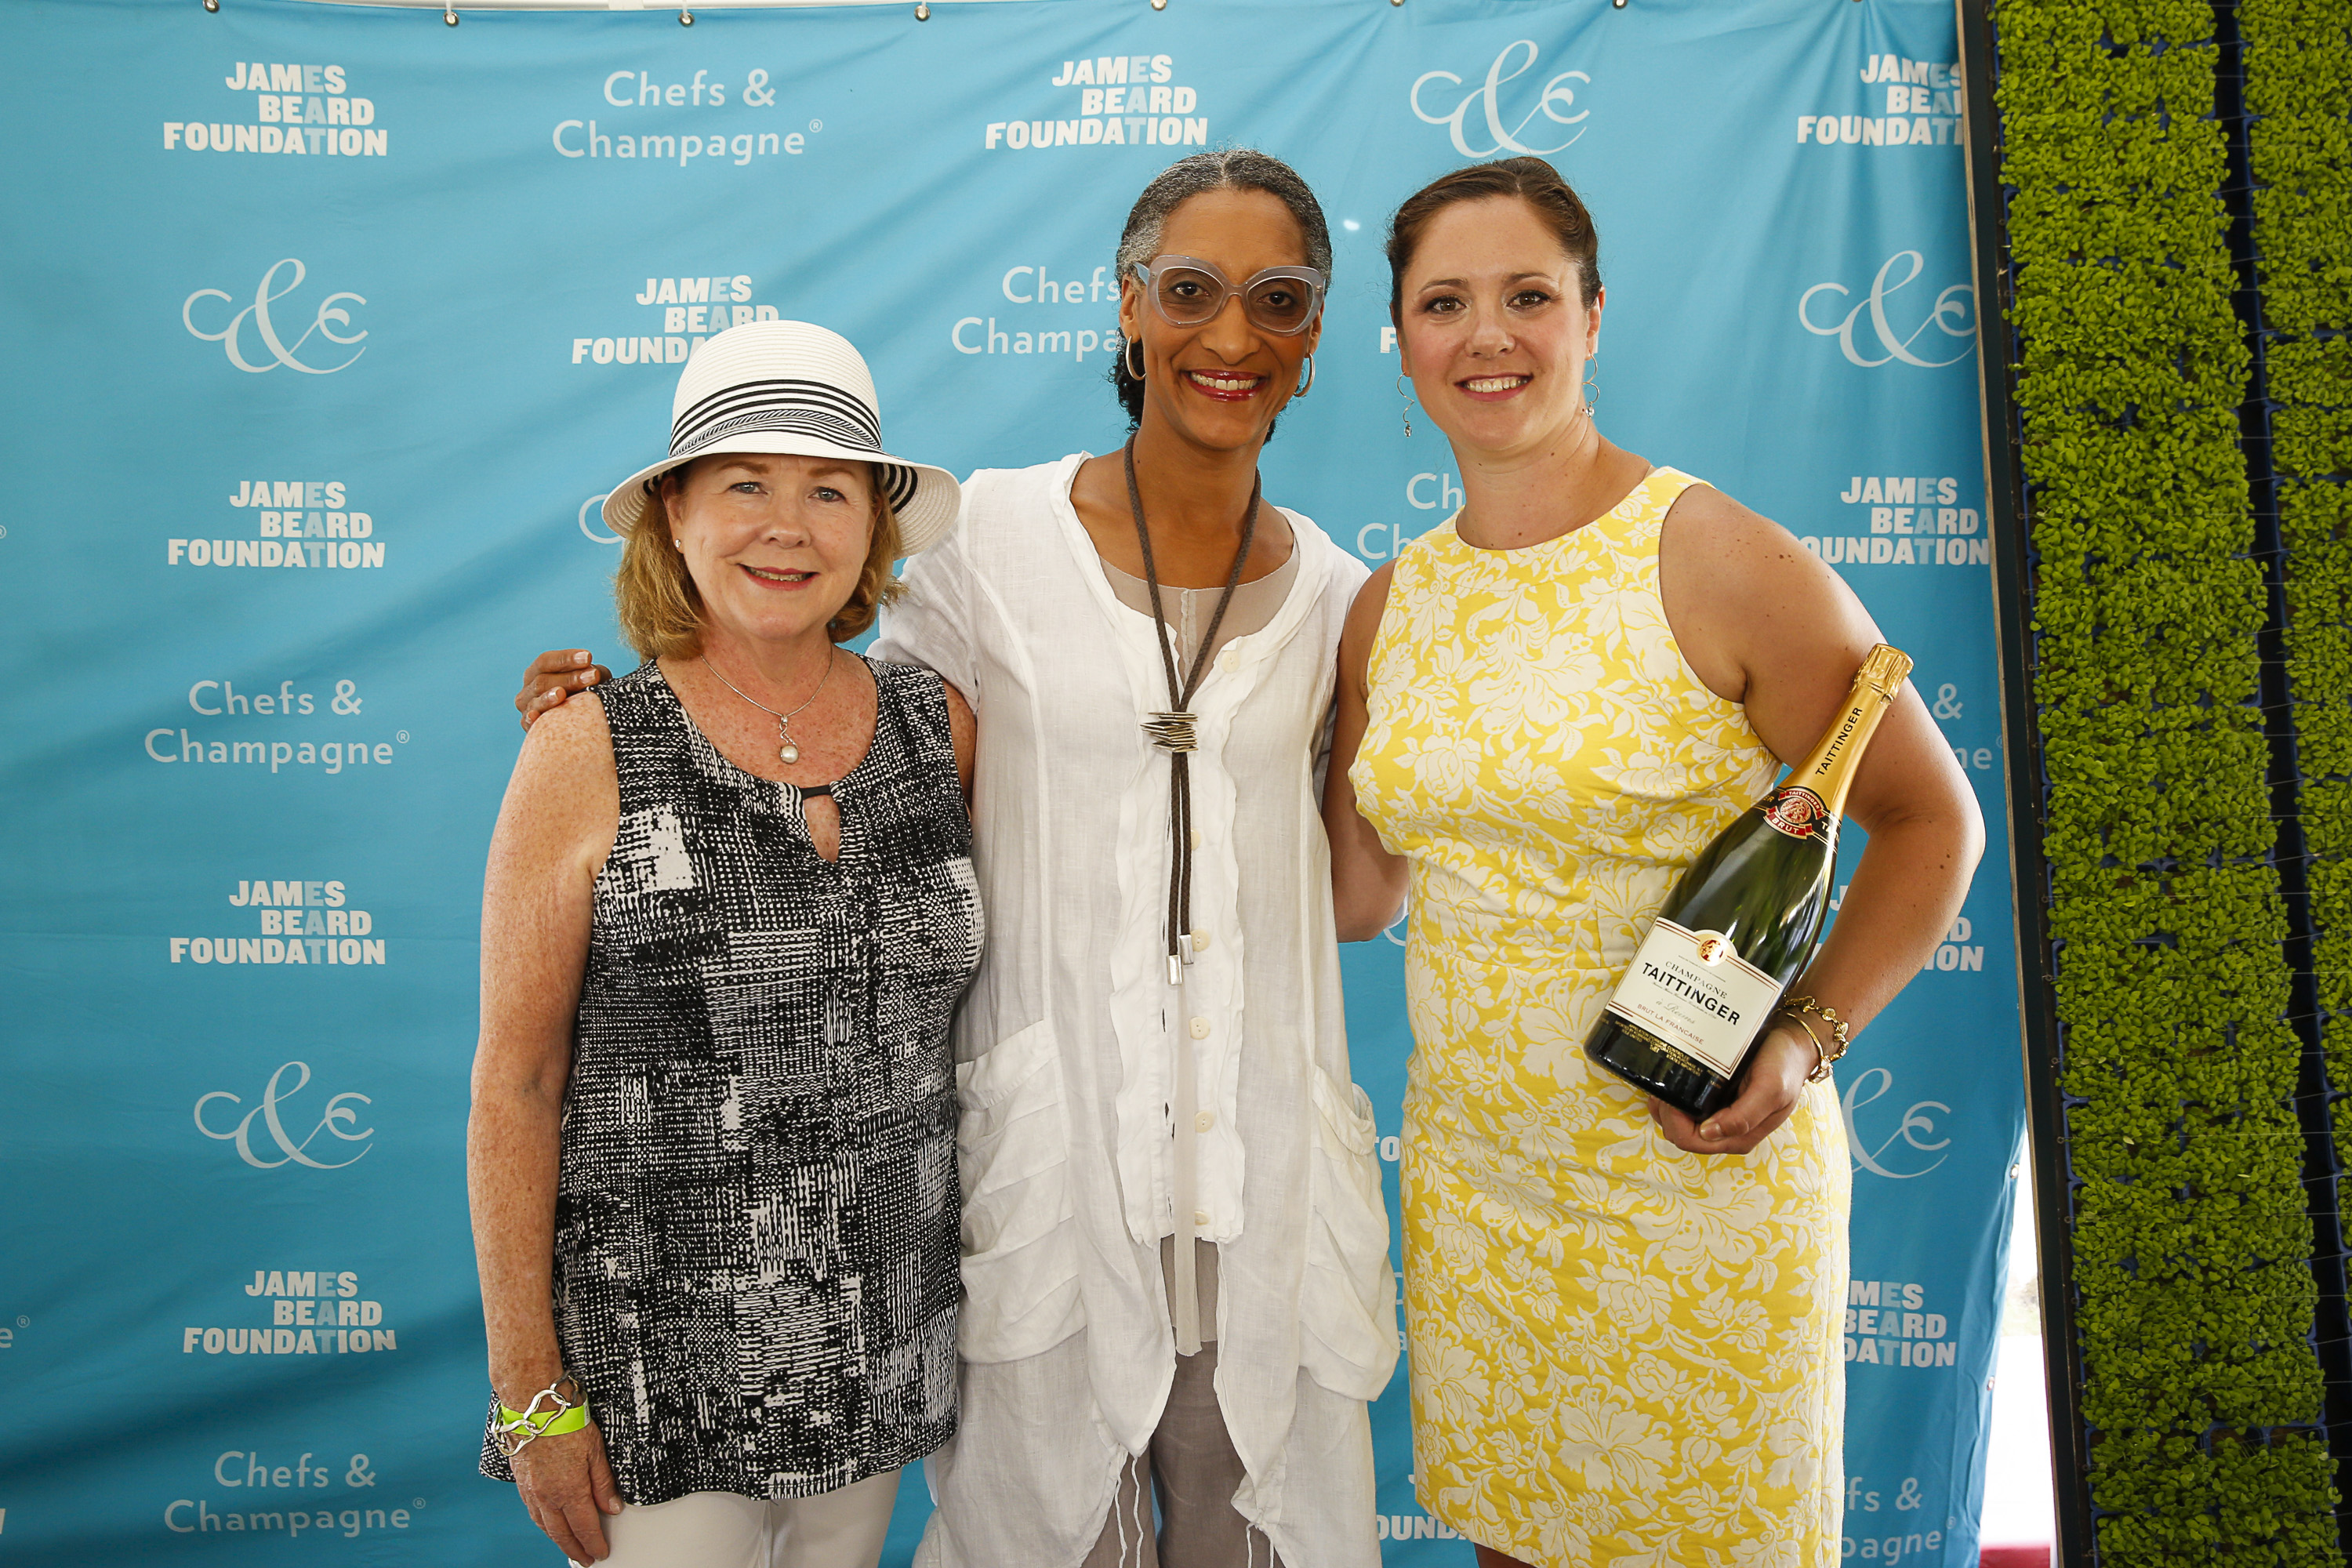 President of the James Beard Foundation Susan Ungaro, Honoree Chef Carla Hall and Wine Director of Aureole, Carrie Lyn Strong seen at James Beard Foundation's Chefs & Champagne at Wolffer Estate on Saturday, July 25, 2015 in Sagaponack, N.Y. (credit: mark von holden/invision for james beard foundation/ap Images)